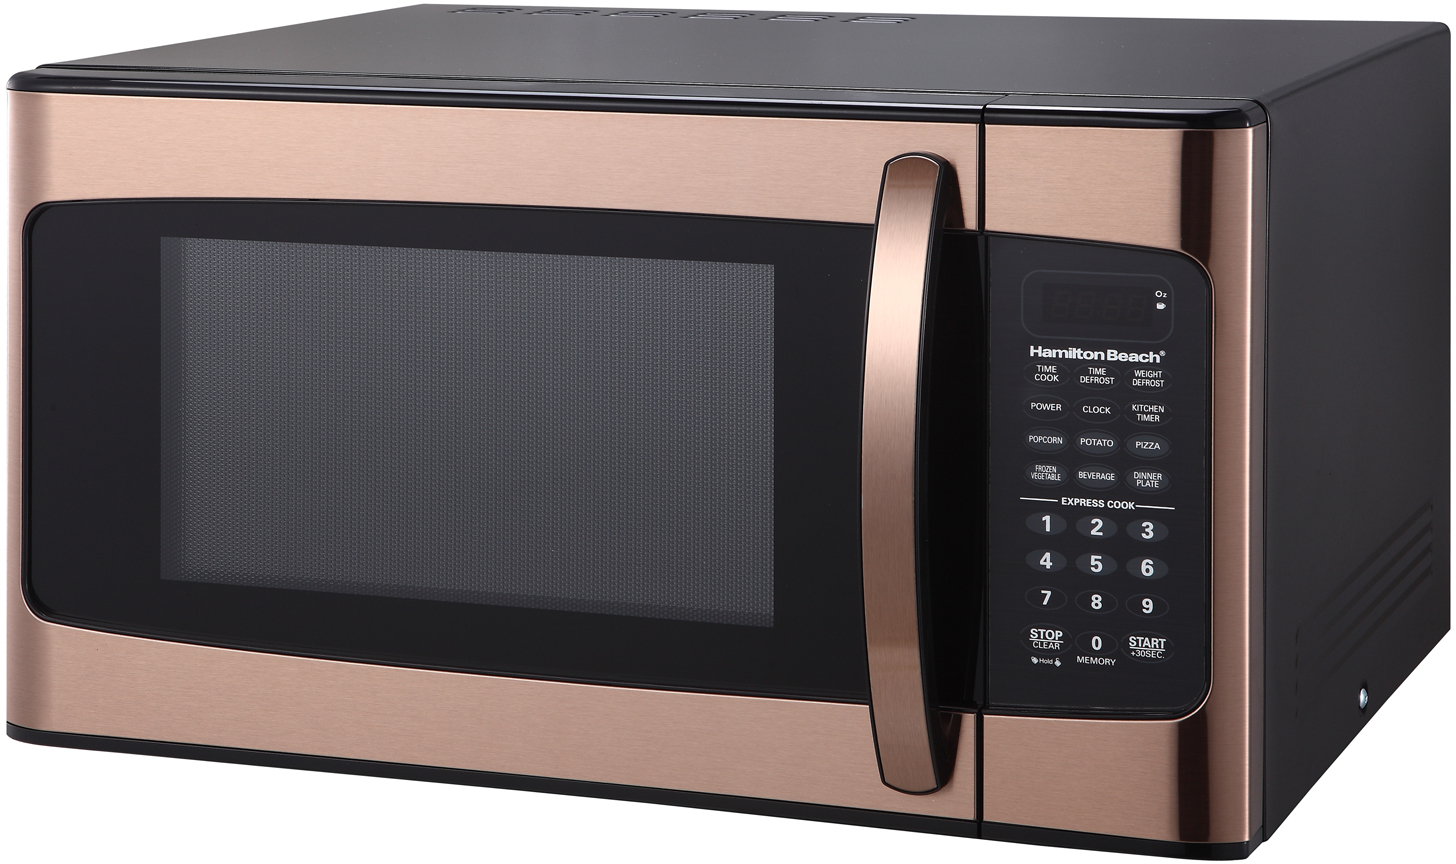 Hamilton Beach 1 1 Cu Ft Kitchen Microwave Oven Cooking